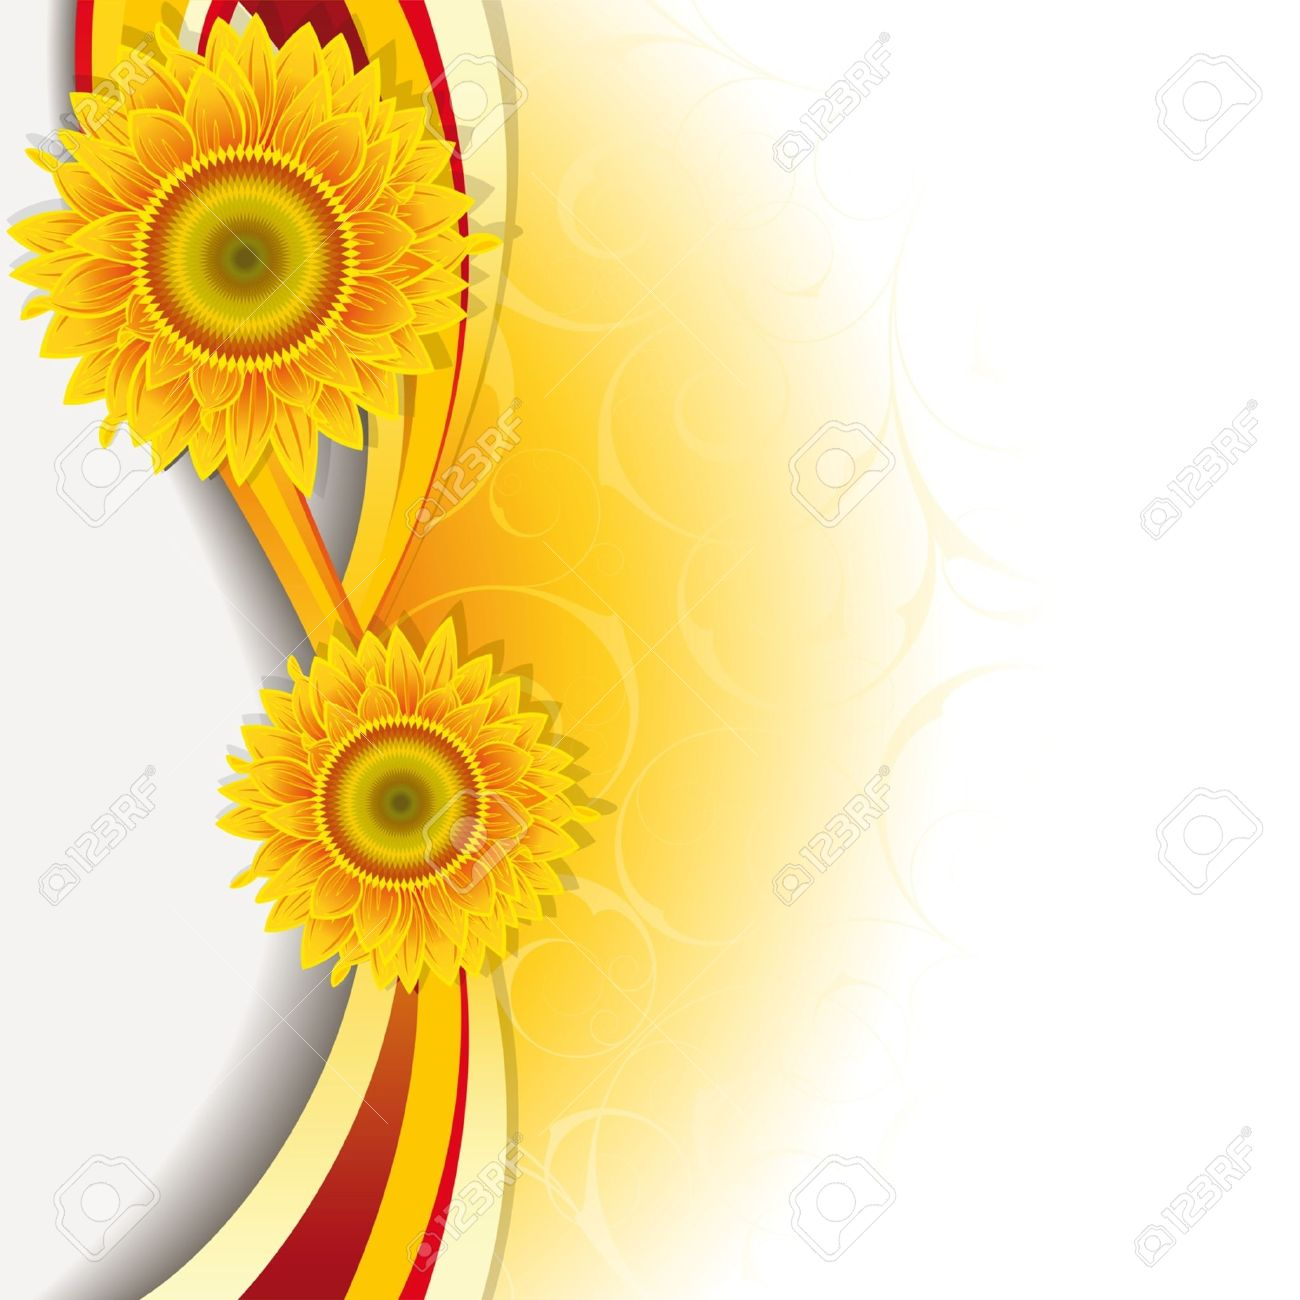 Orange background with a wave and sunflowers. - 9692044